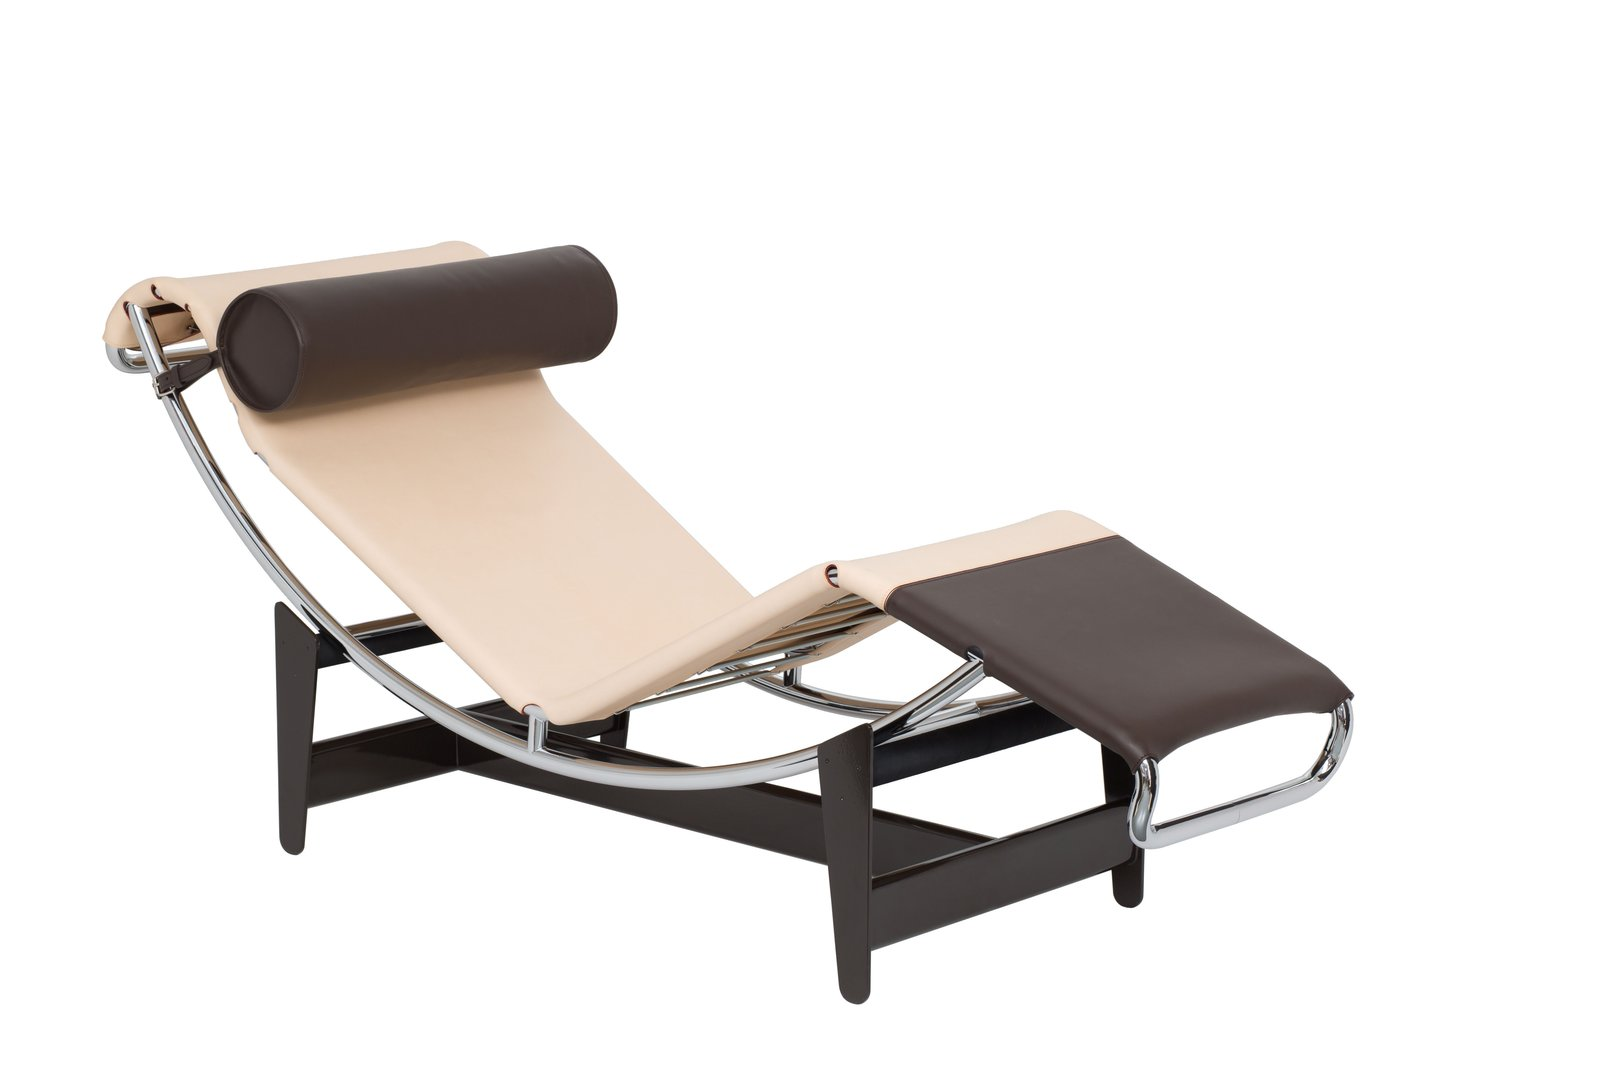 """The limited-edition LC4 CP chaise longue, based on Perriand's original LC4, indtroduced in 1928. It features a self-supporting mattress attached directly to its frame. Le Corbusier dubbed the original LC4 the """"relaxing machine"""" becuase of the way it reflected the natural human form for maximum comfort. Image courtesy of Cassina.  Photo 5 of 6 in Eye on Design: Charlotte Perriand"""